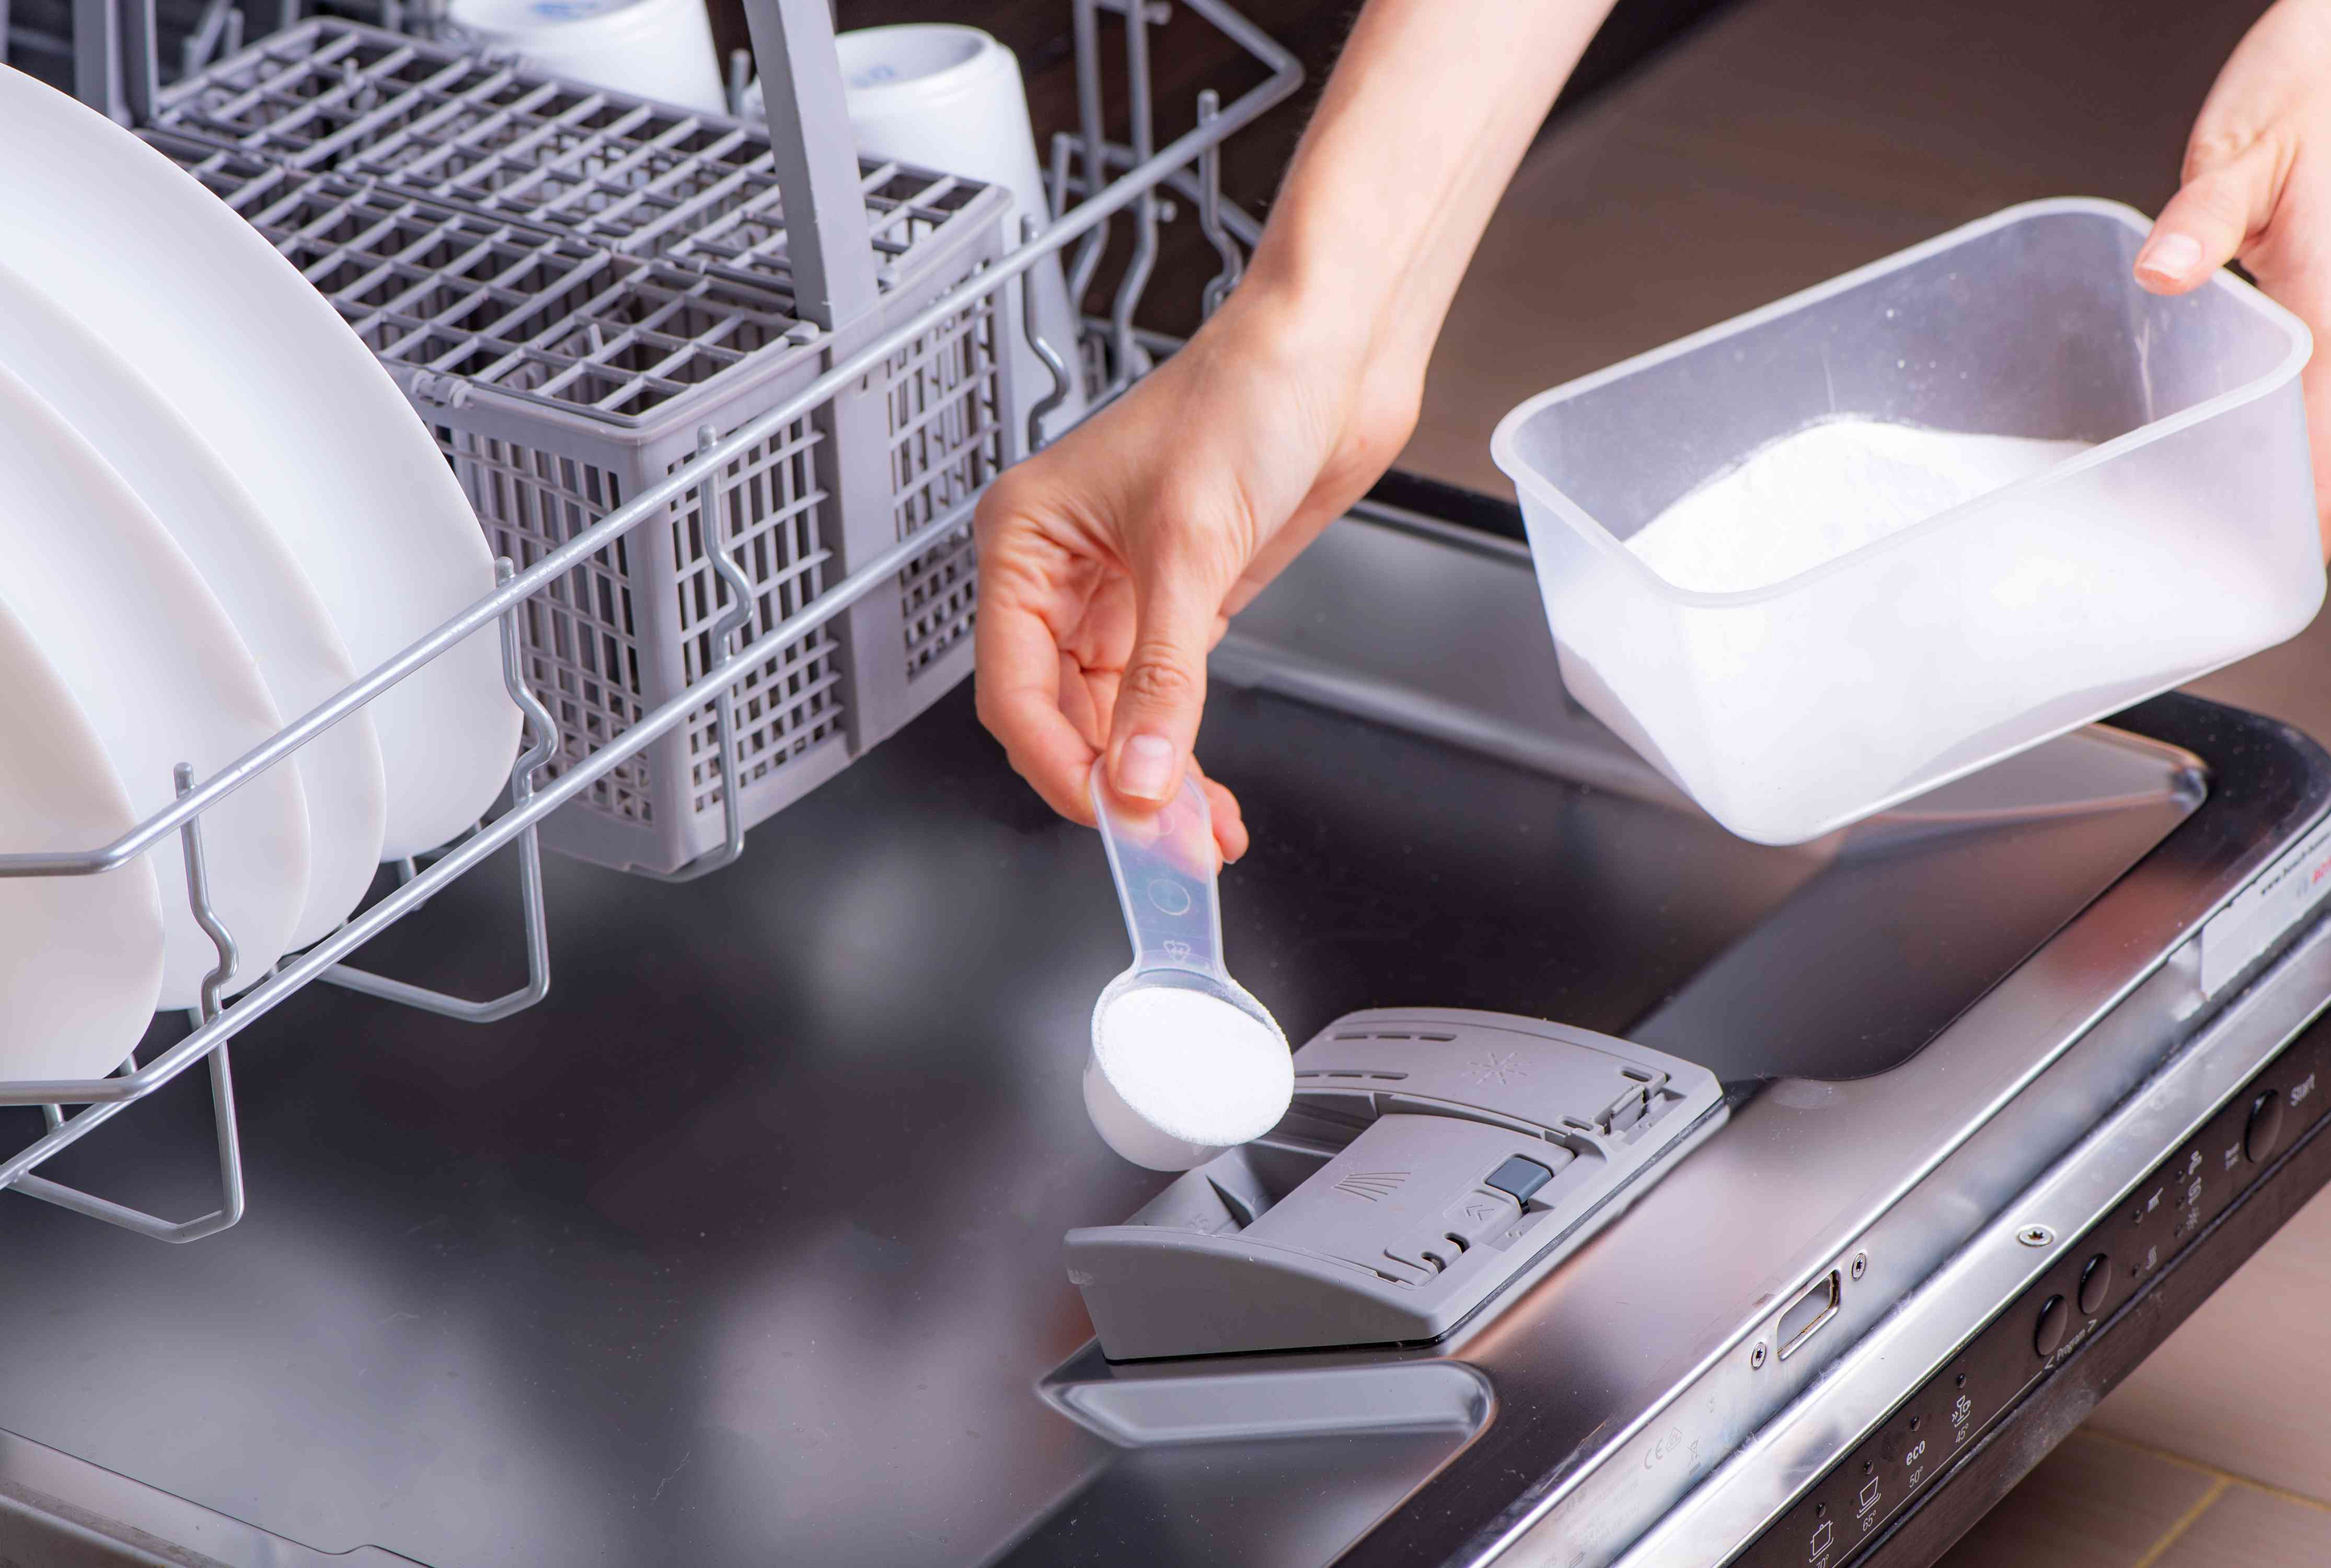 scooping homemade detergent into the dishwasher